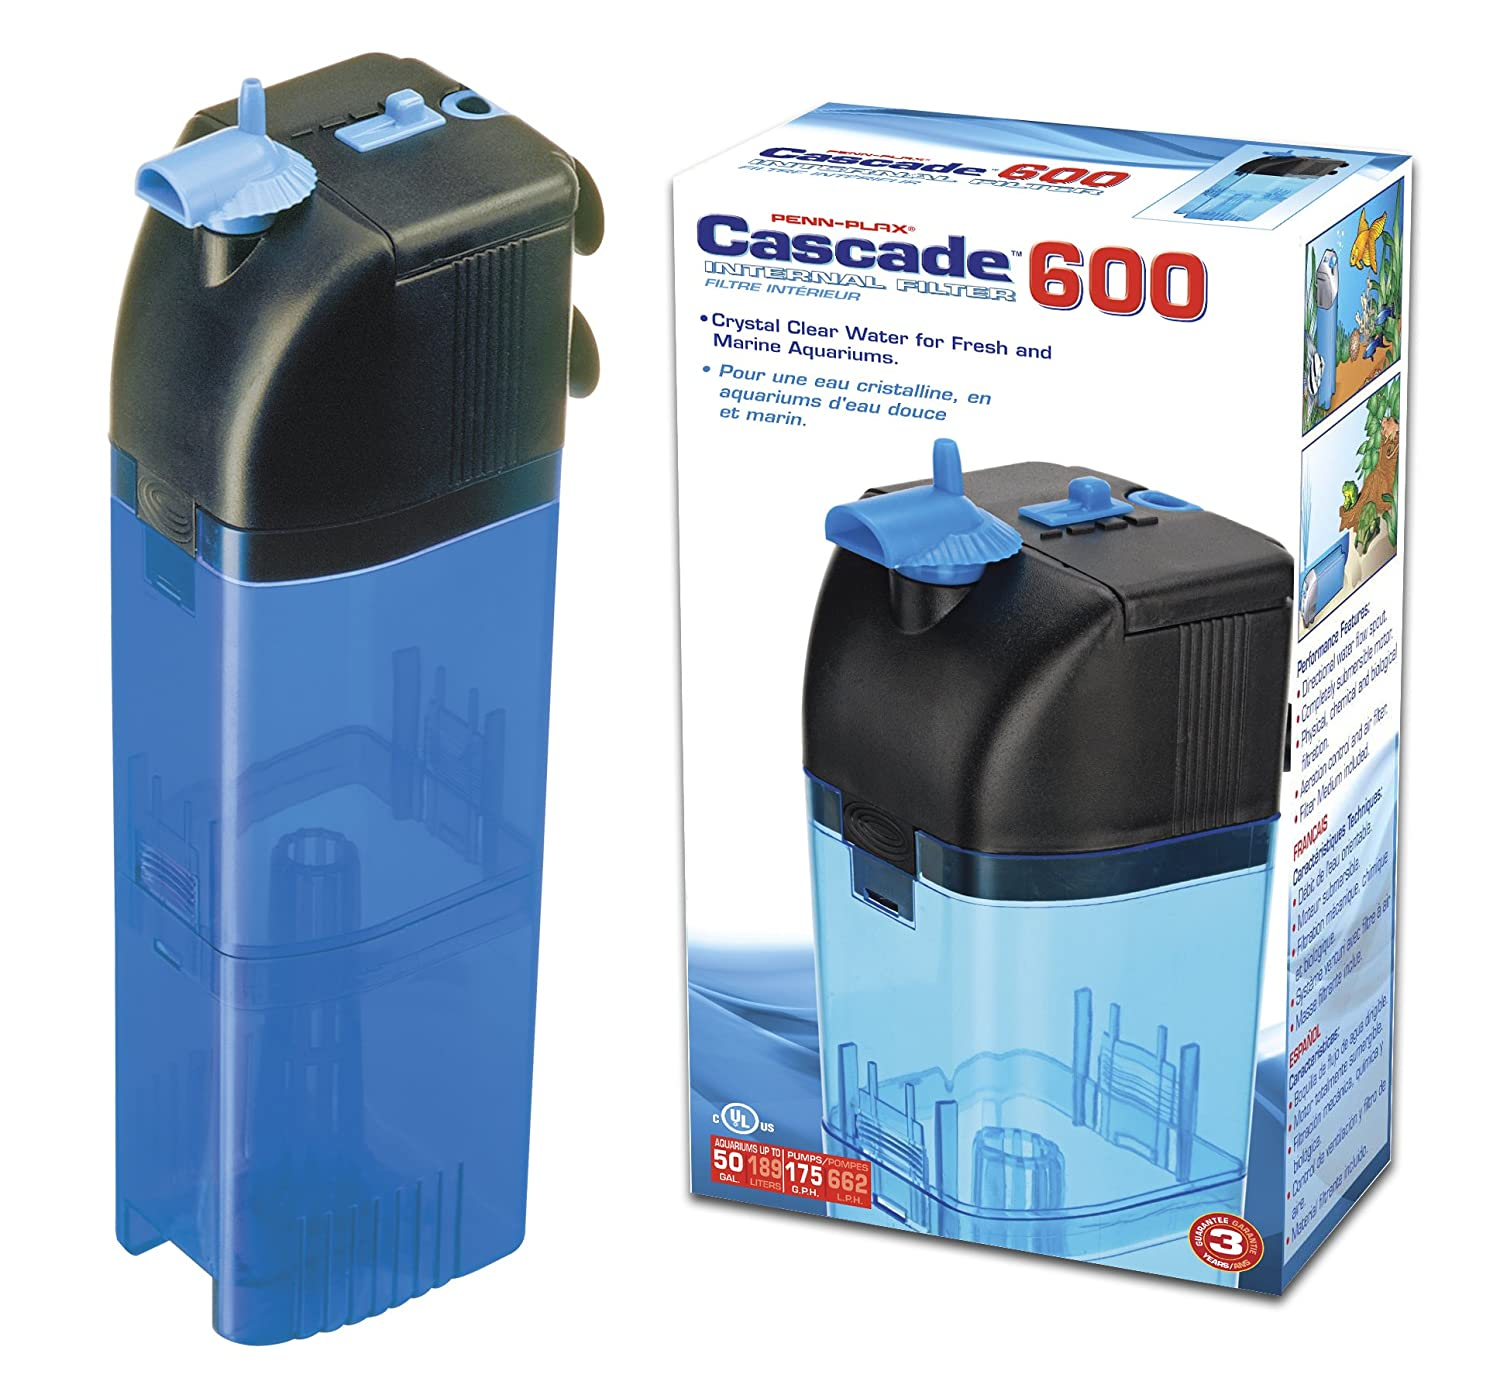 Cascade 600 Penn-Plax Cascade 600 Internal Filter for Aquariums